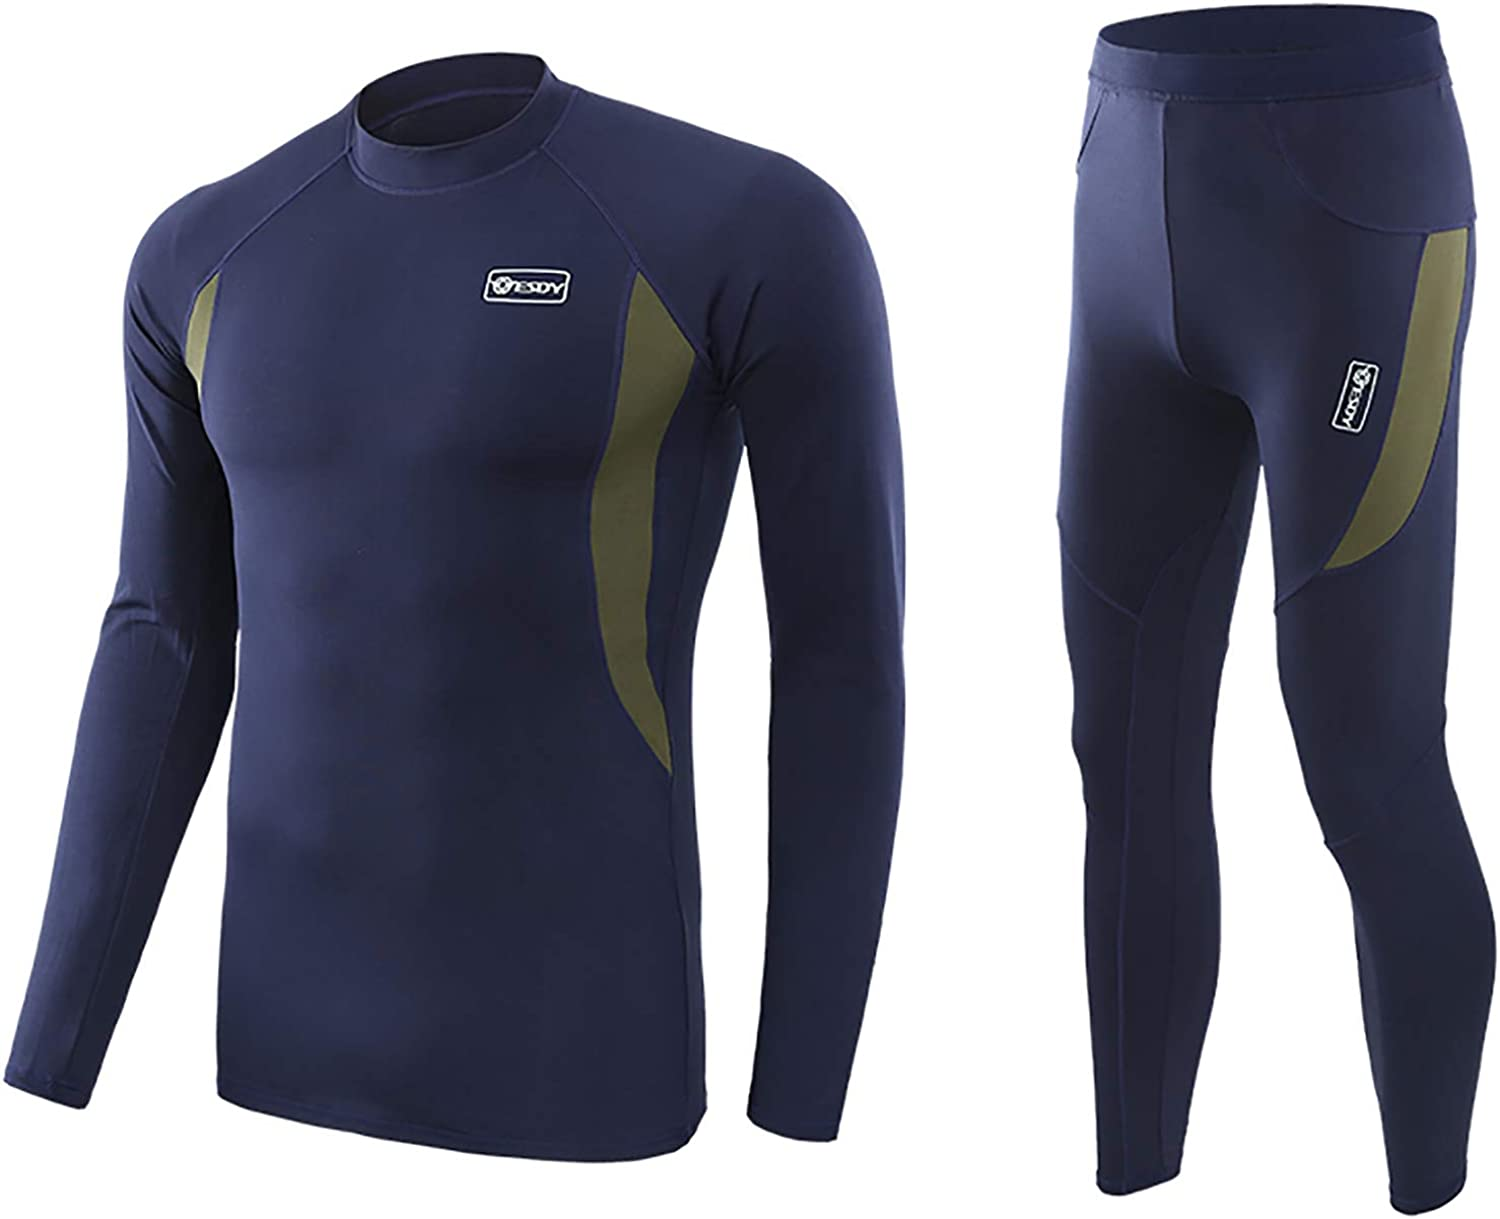 Hansber Men's Thermal Underwear Set Winter Warm Base Layers Tops and Bottoms Long Johns Compression Sport Suit